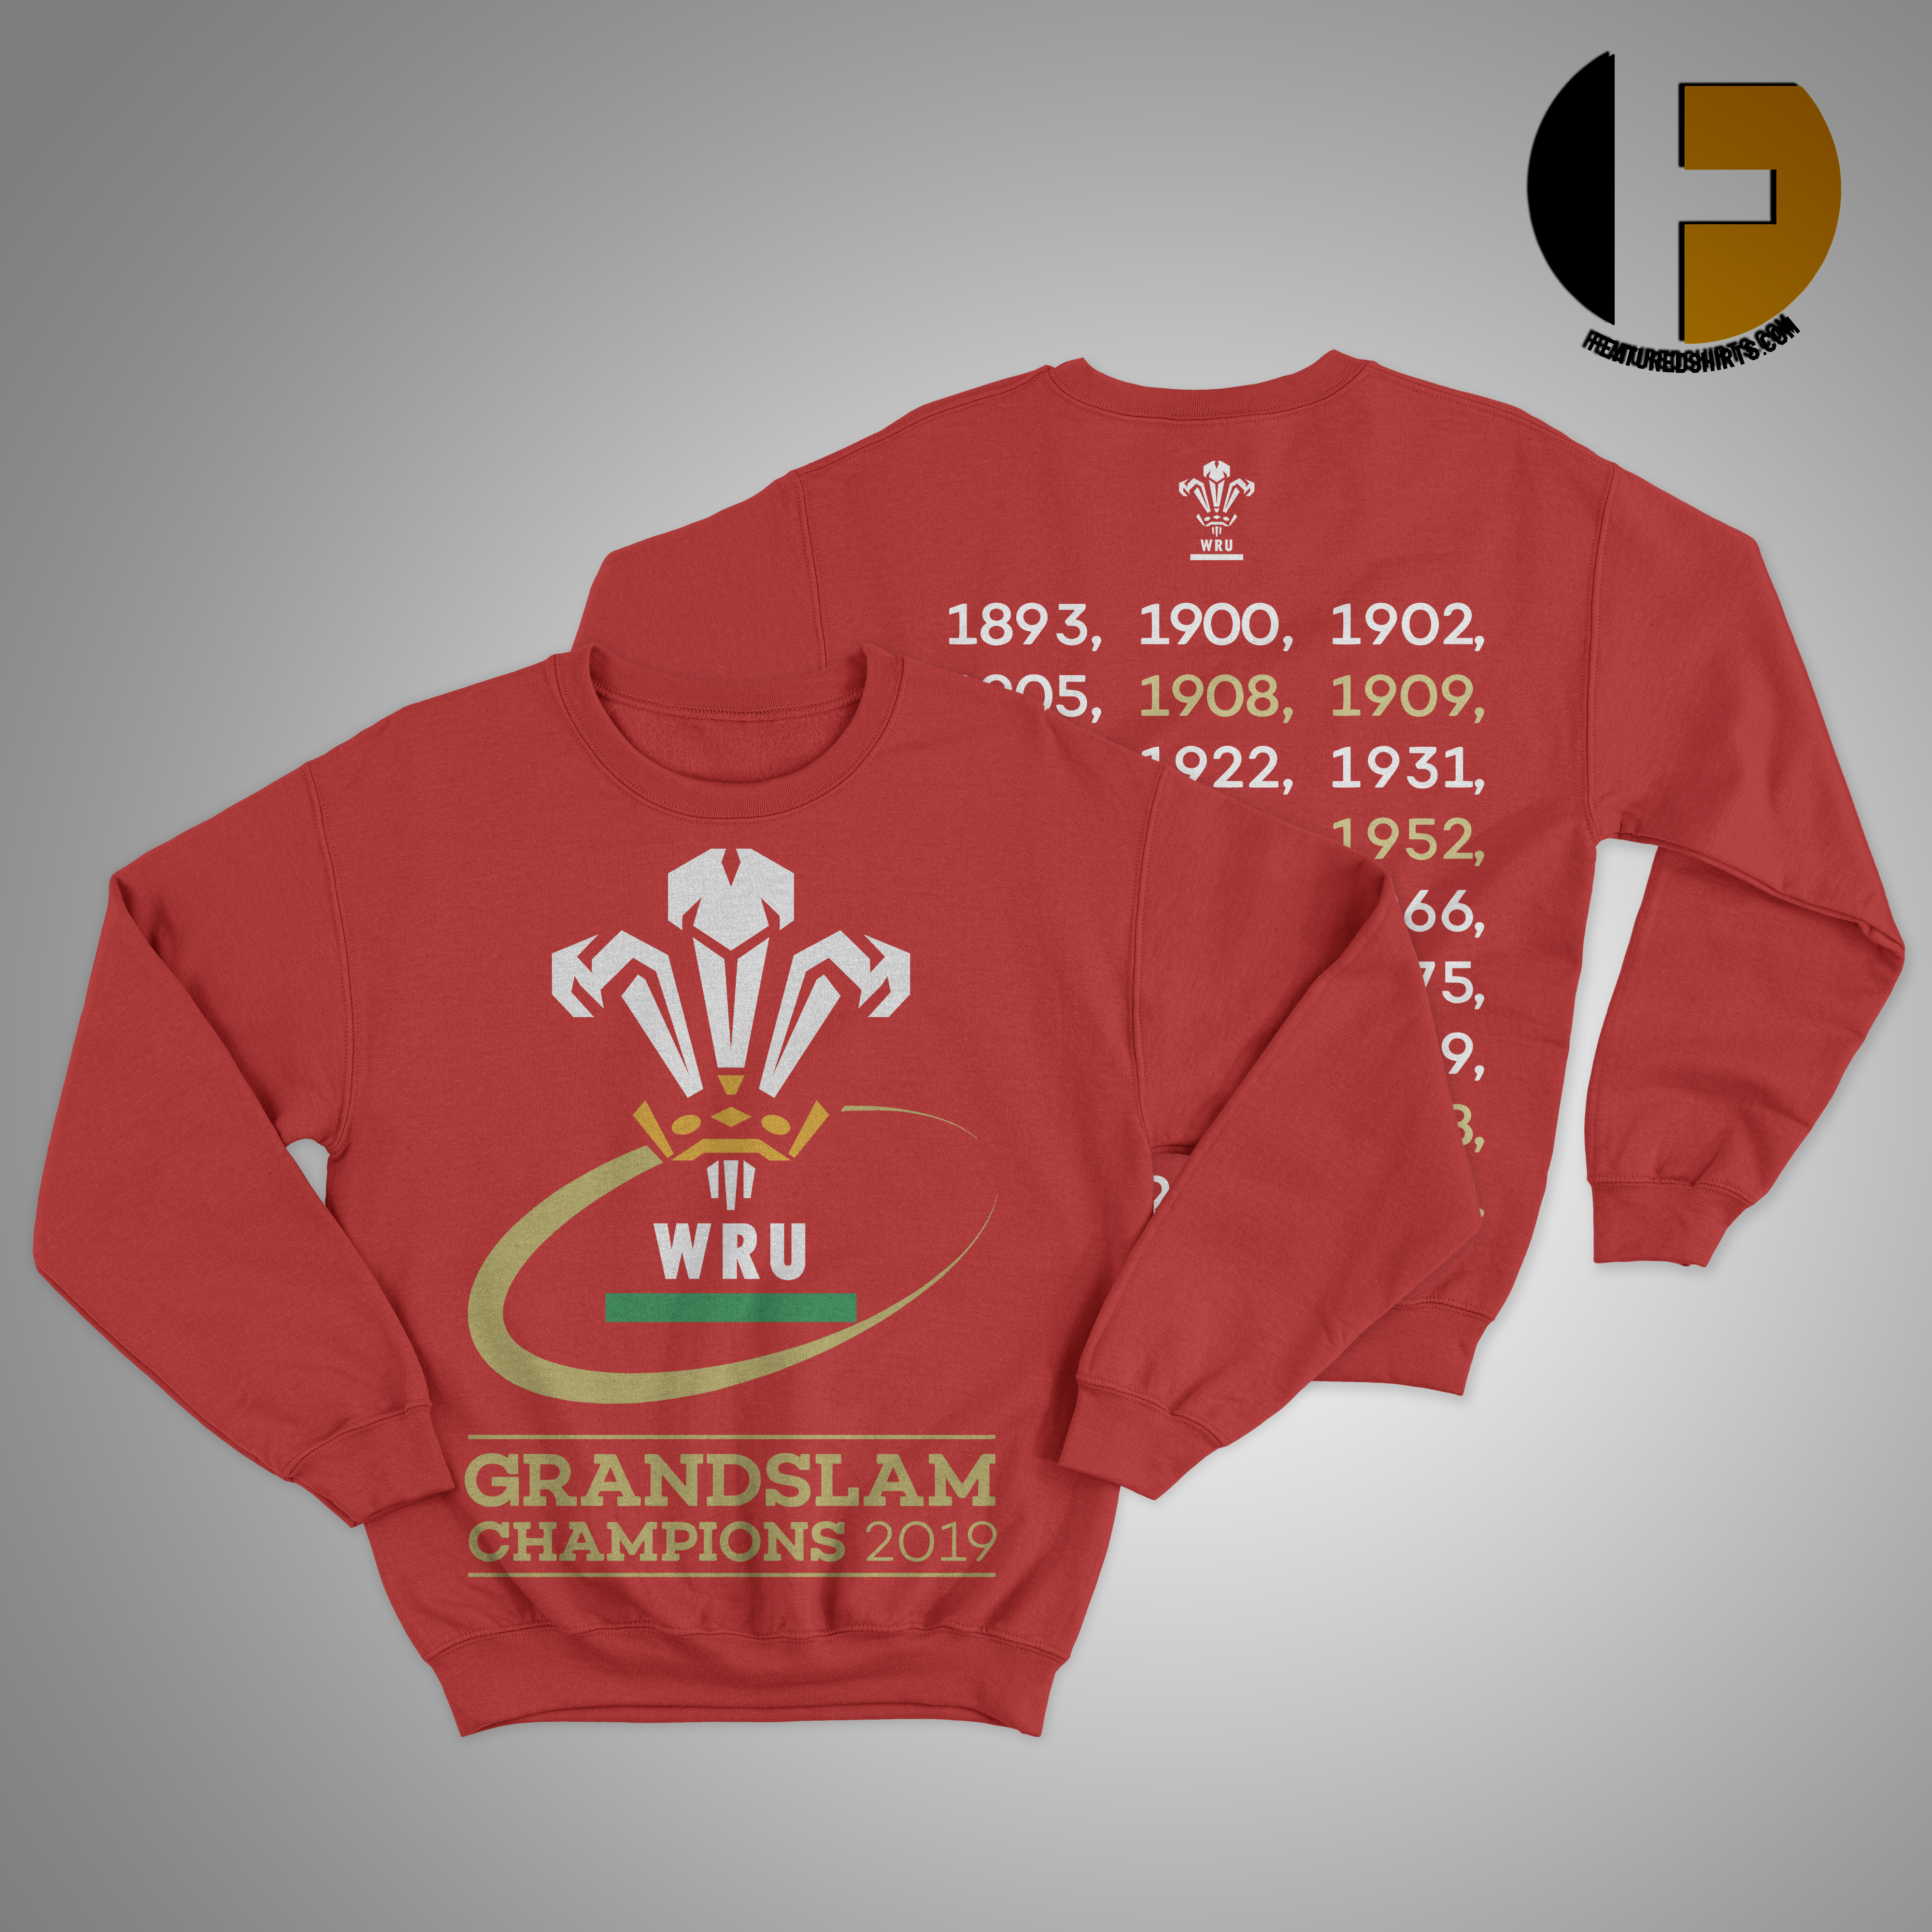 Welsh Rugby 2019 Grand Slam Champions Sweater